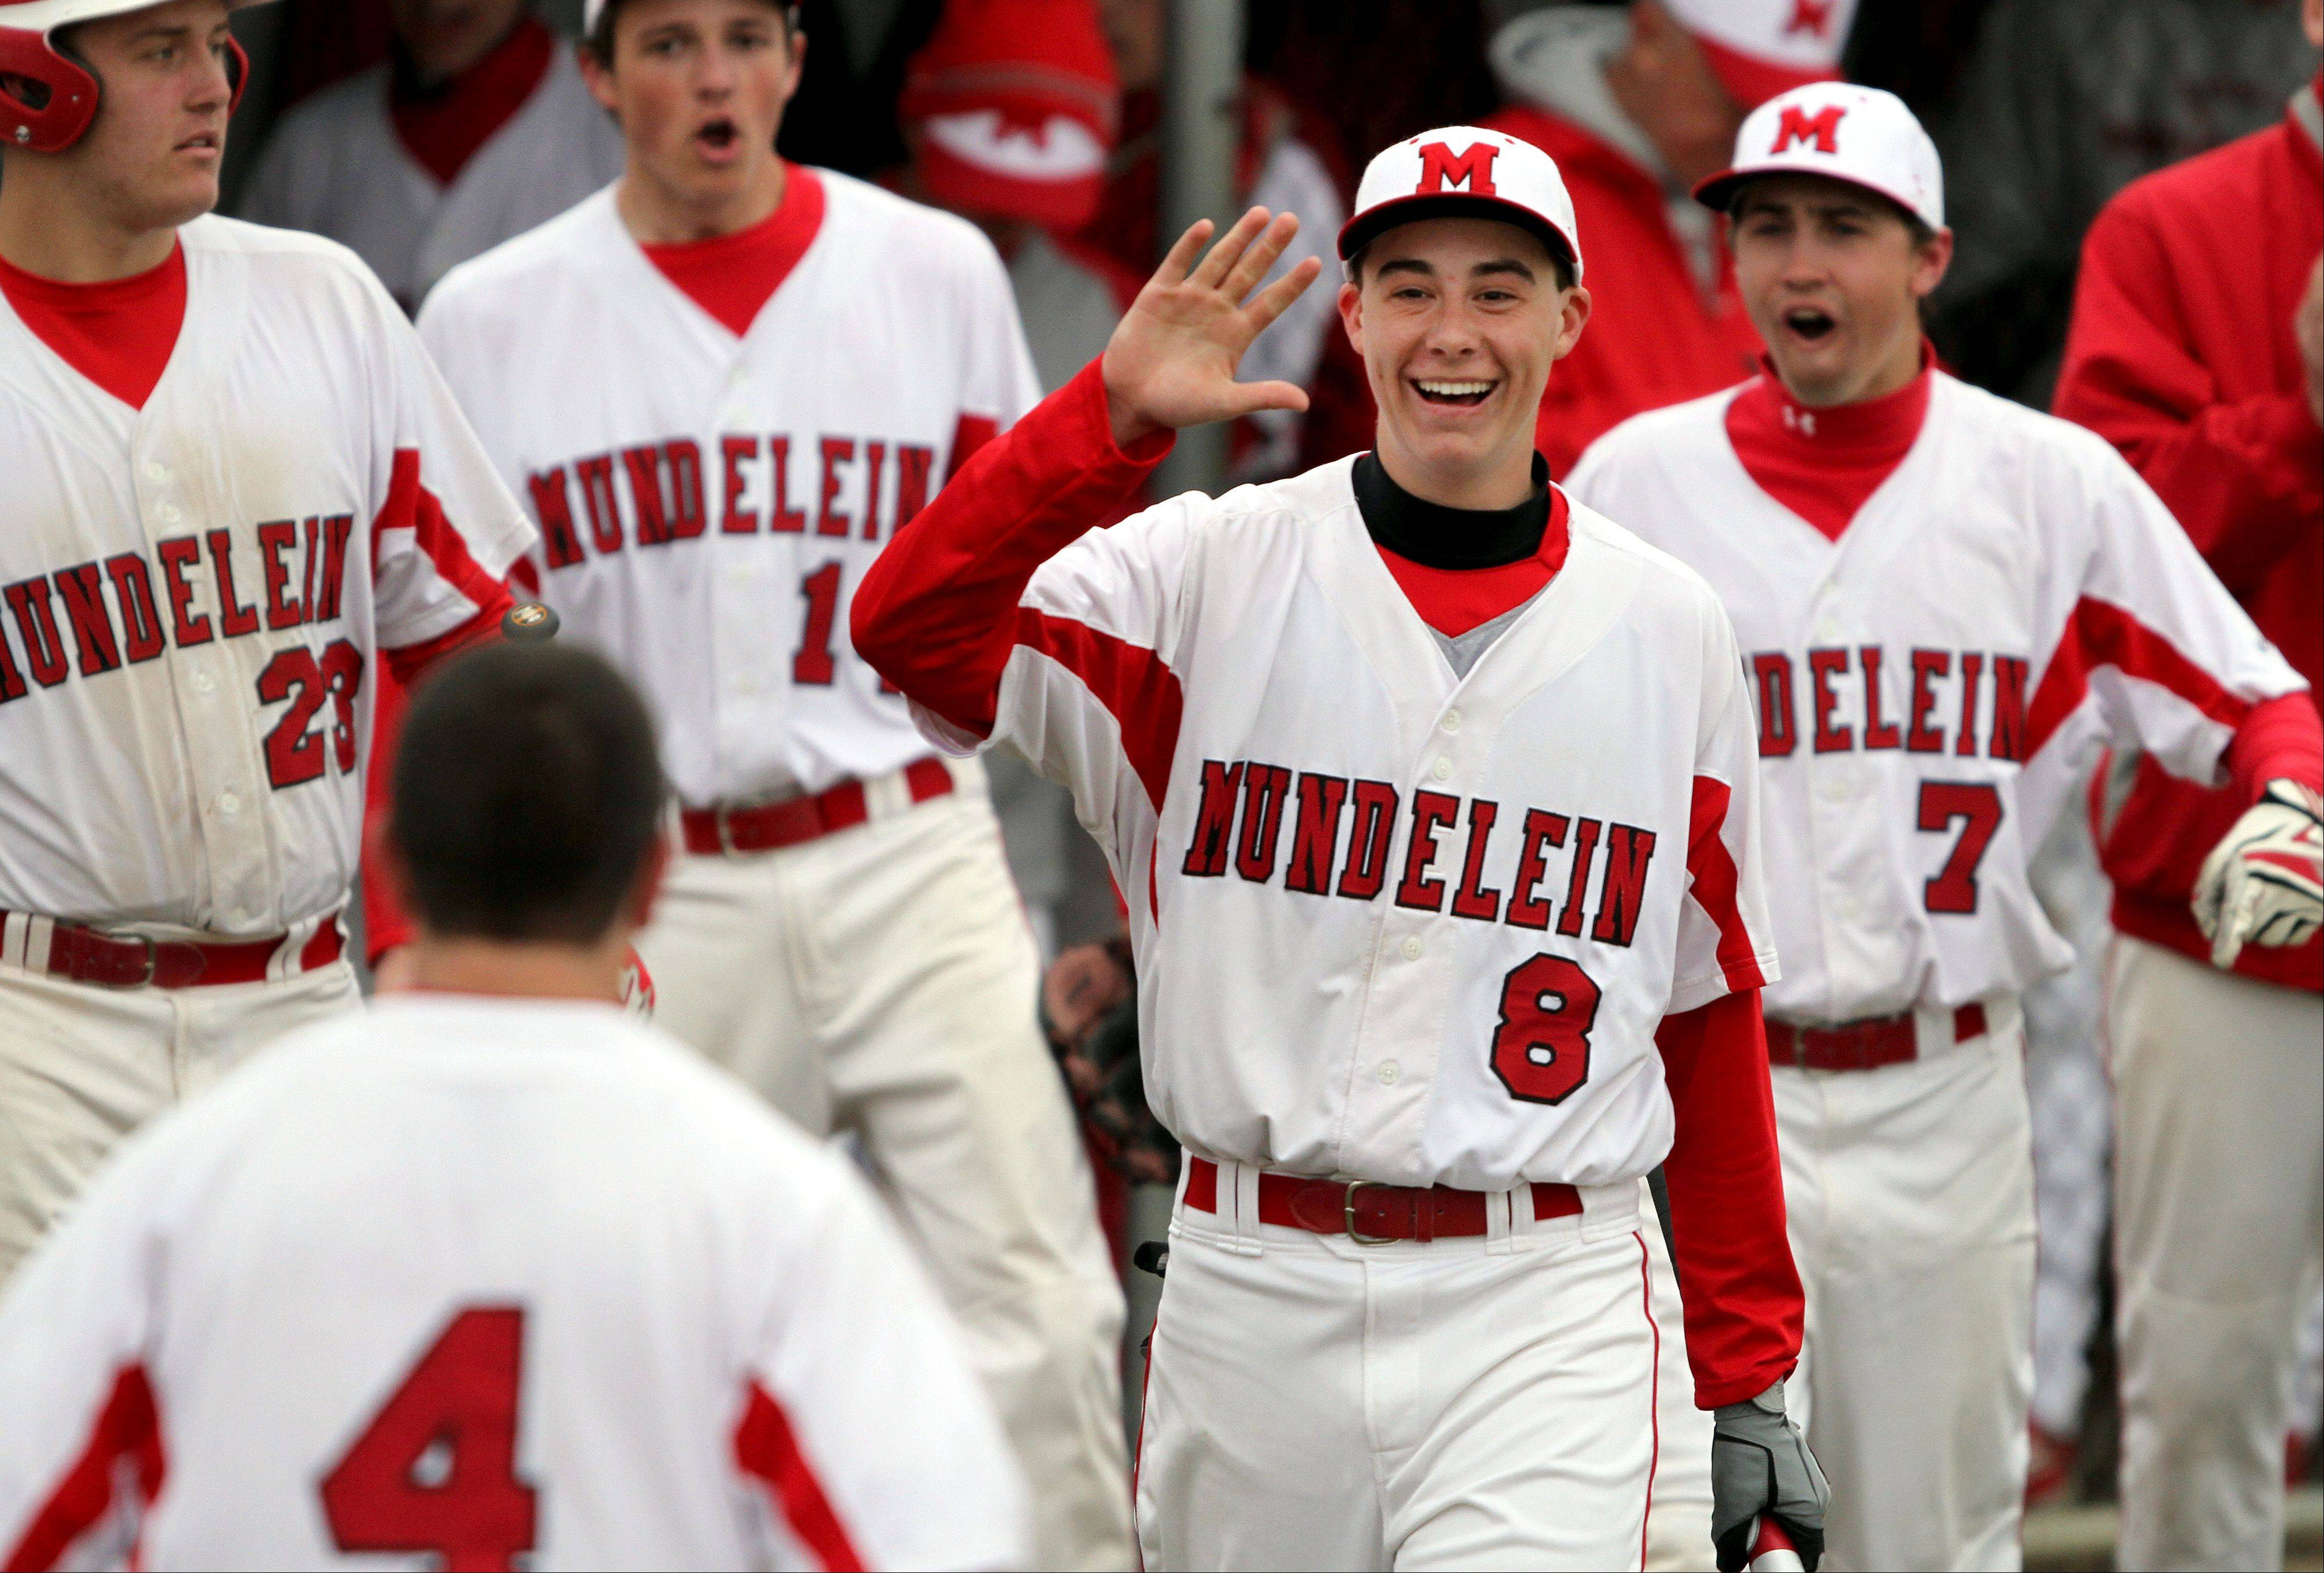 Mundelein's Derek Parola, right, goes to high-five teammate Thomas Gandolfi after Gandolfi scored in the third inning against Lake Zurich on Tuesday at Mundelein.